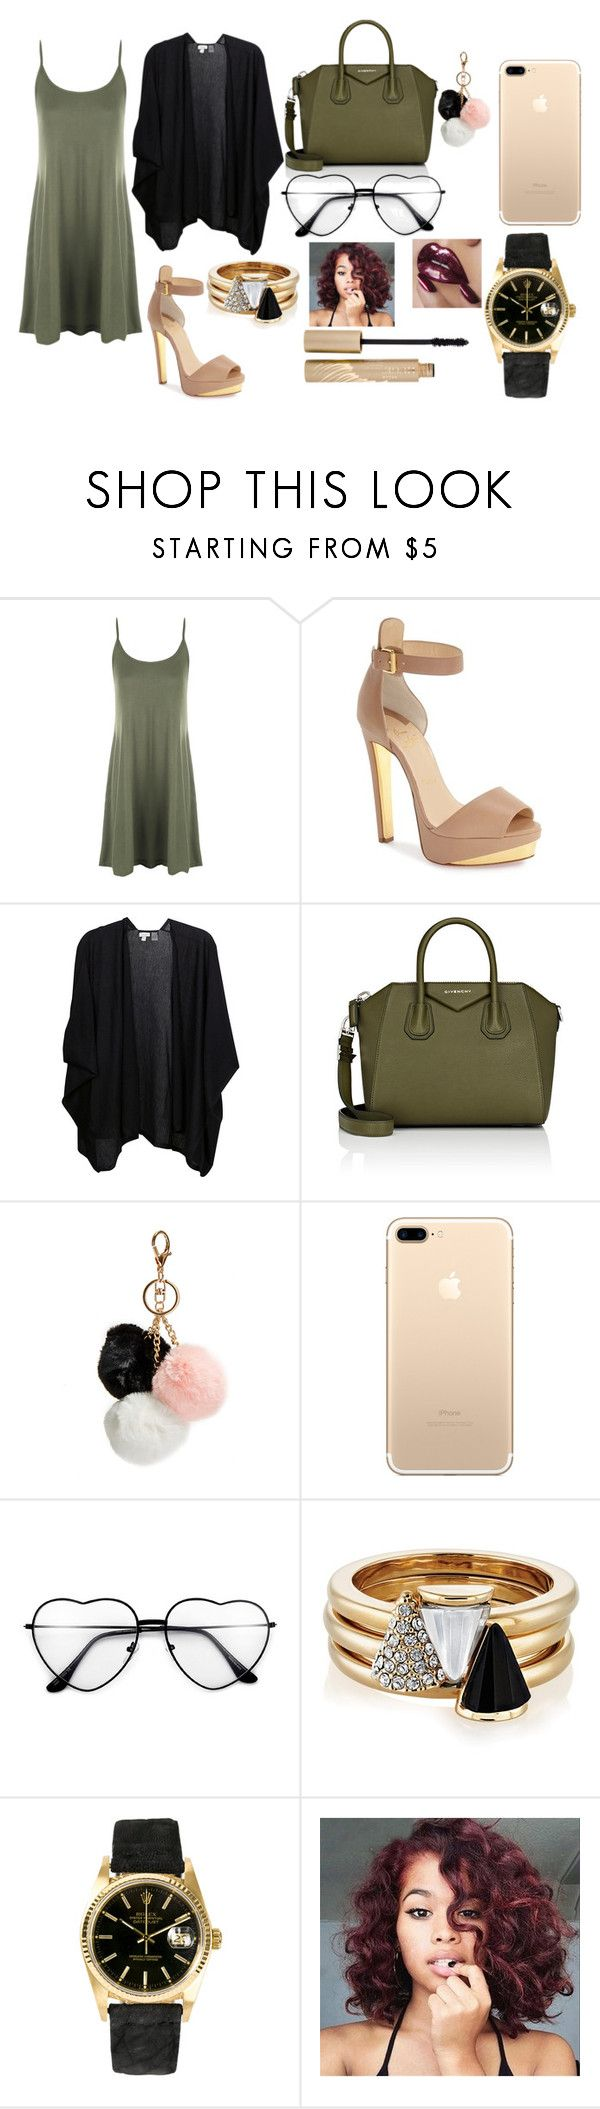 """Sunday Church 2/19/17 Outfit"" by queencotton21 on Polyvore featuring WearAll, Christian Louboutin, Kinross, Givenchy, GUESS, Brixton, Rolex and Stila"